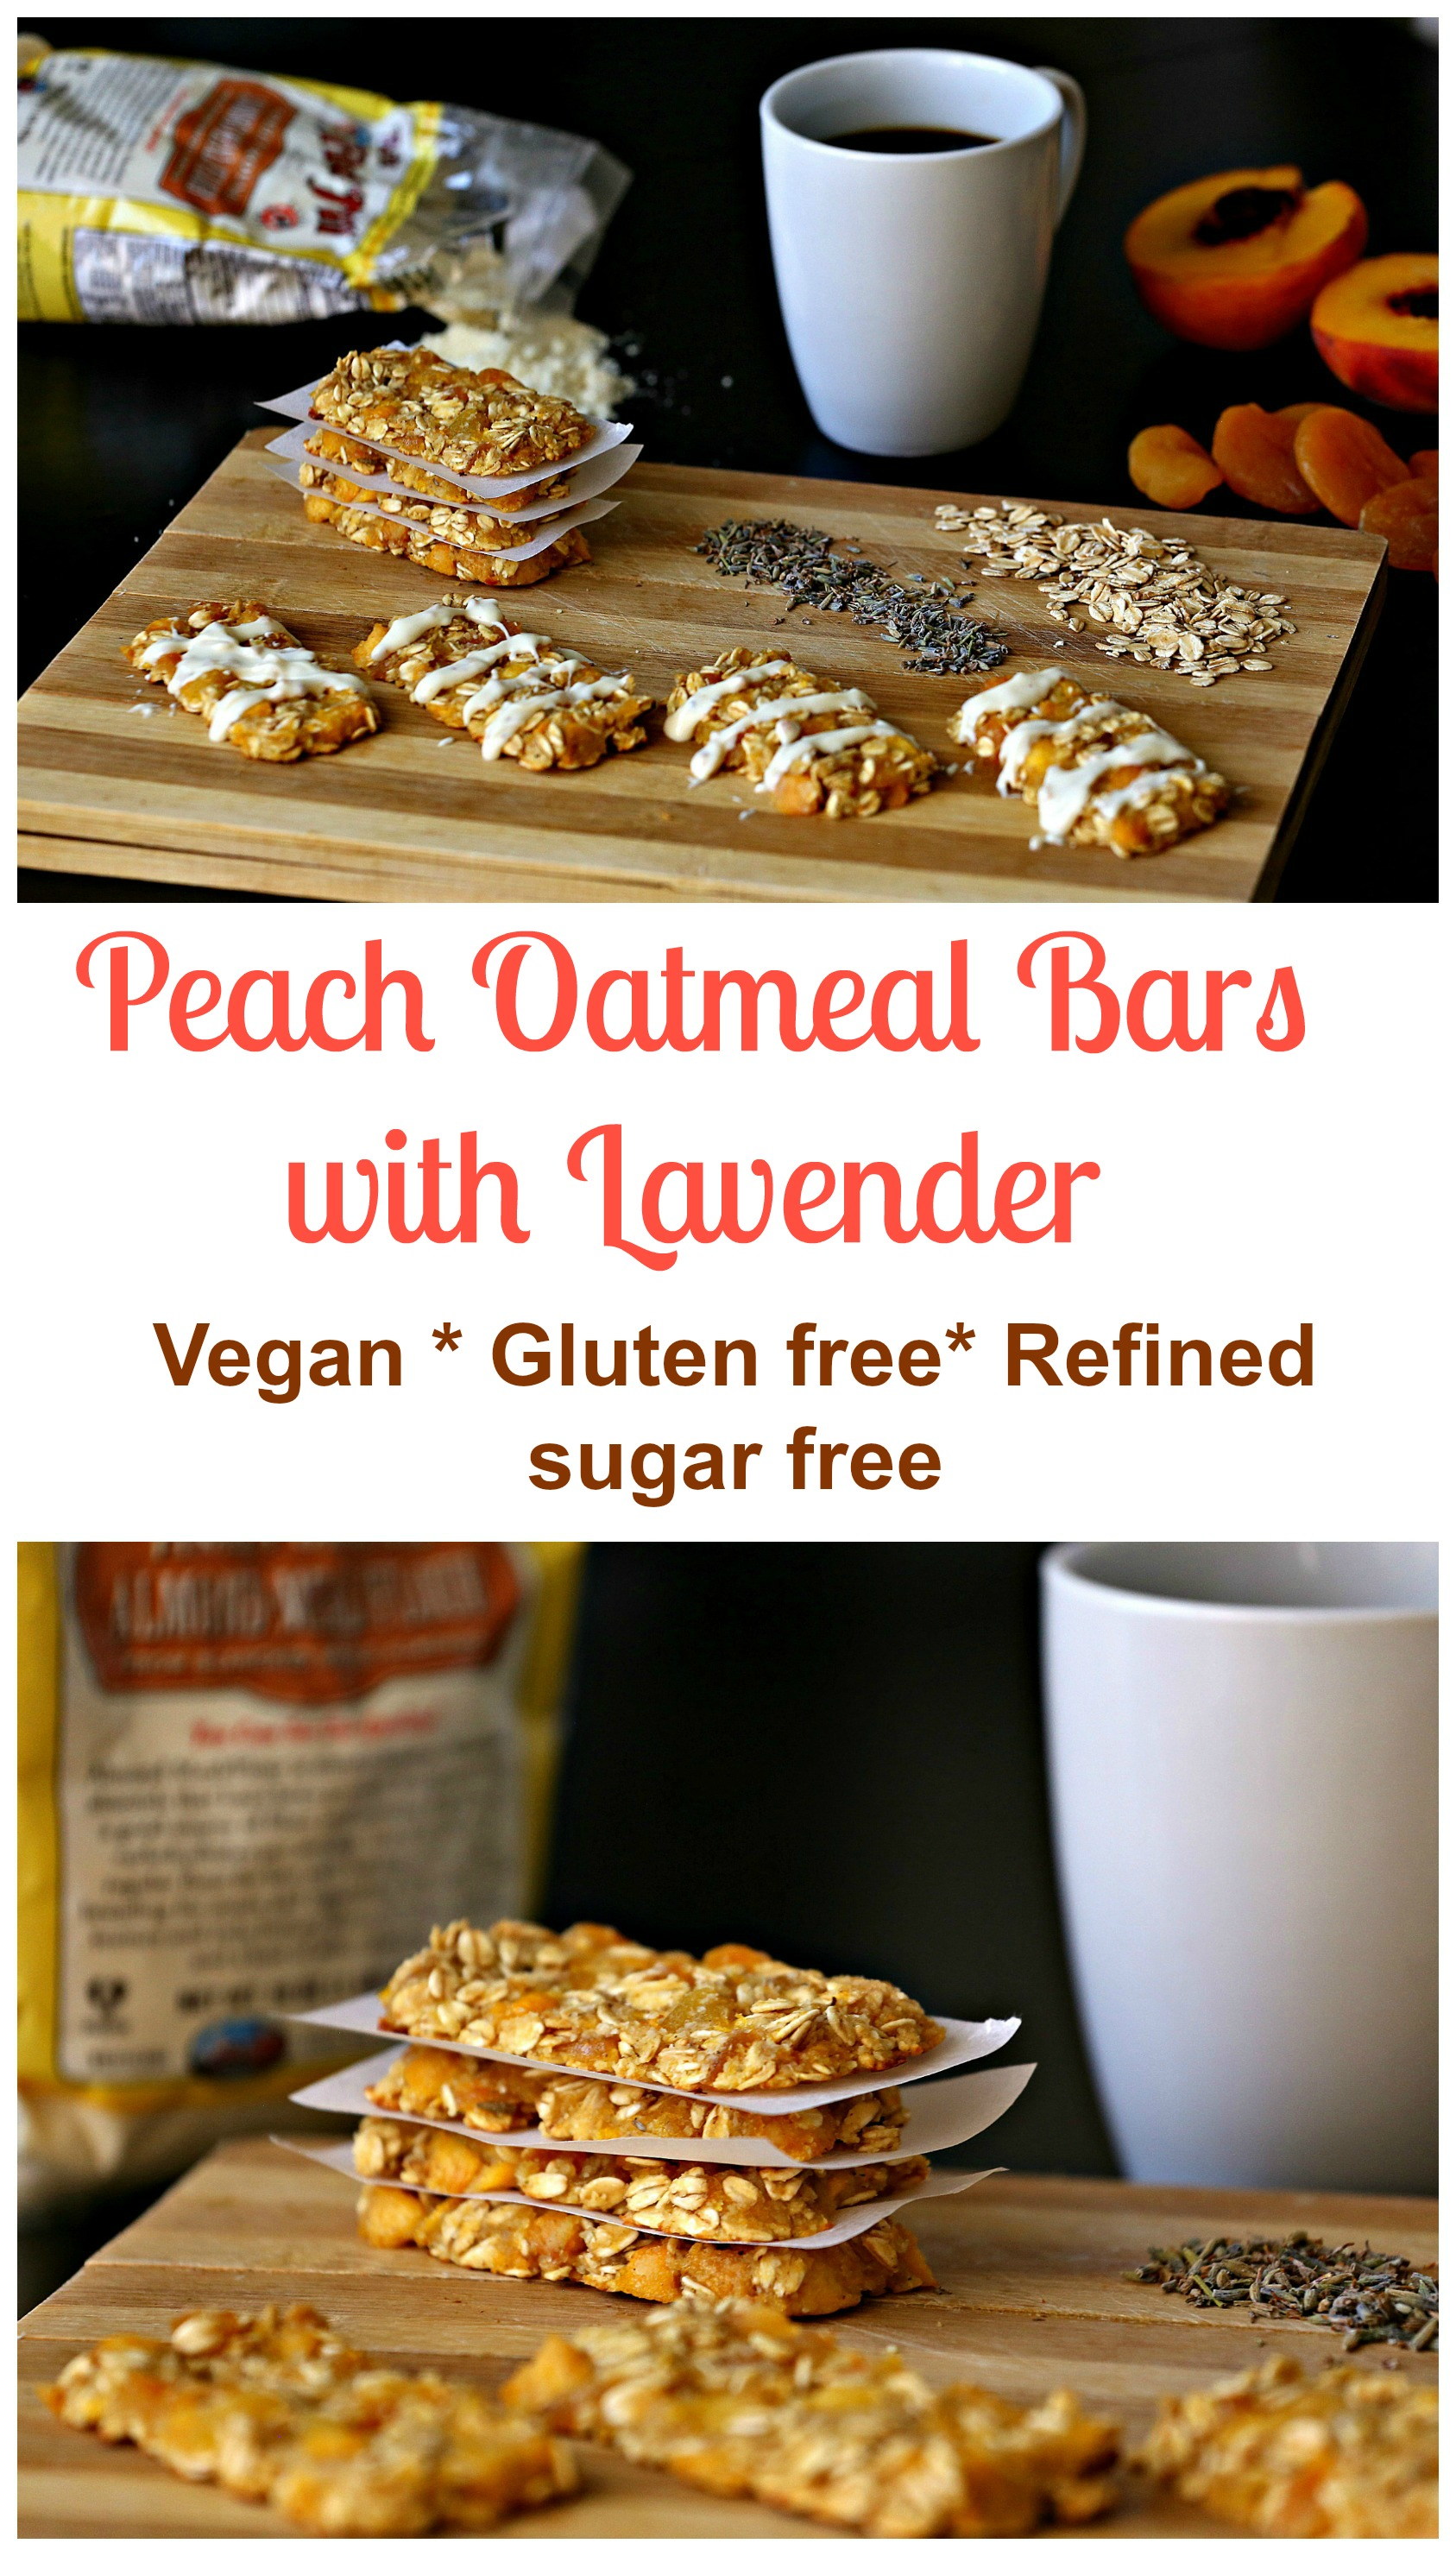 peach-oatmeal-bars-with-lavender-collage-edited